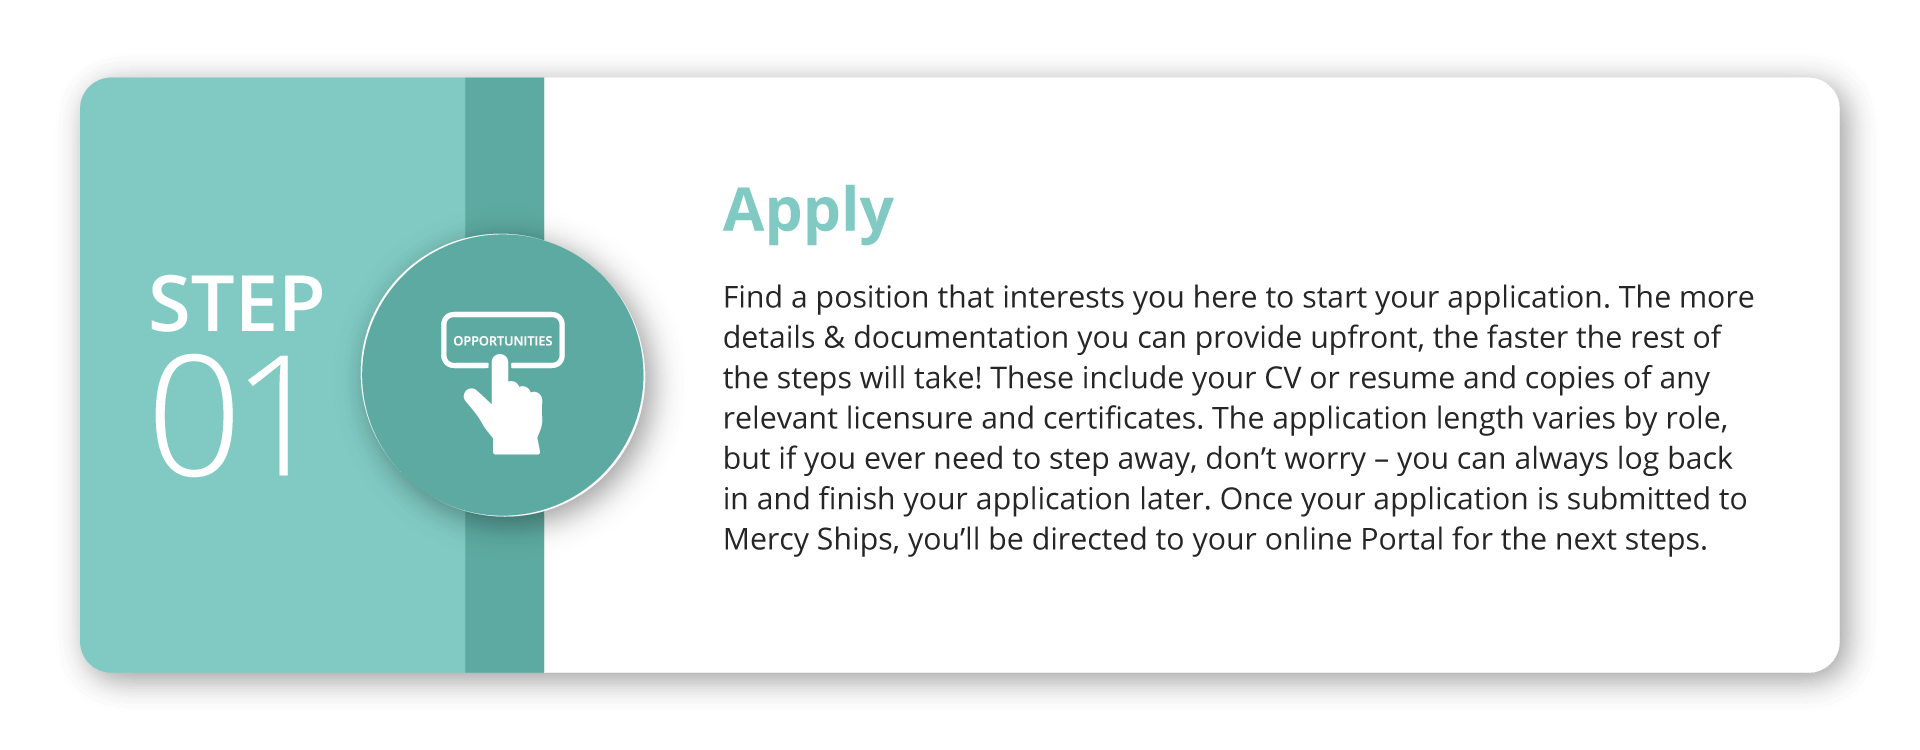 mercy-ships-volunteer-how-to-apply-step-1.png